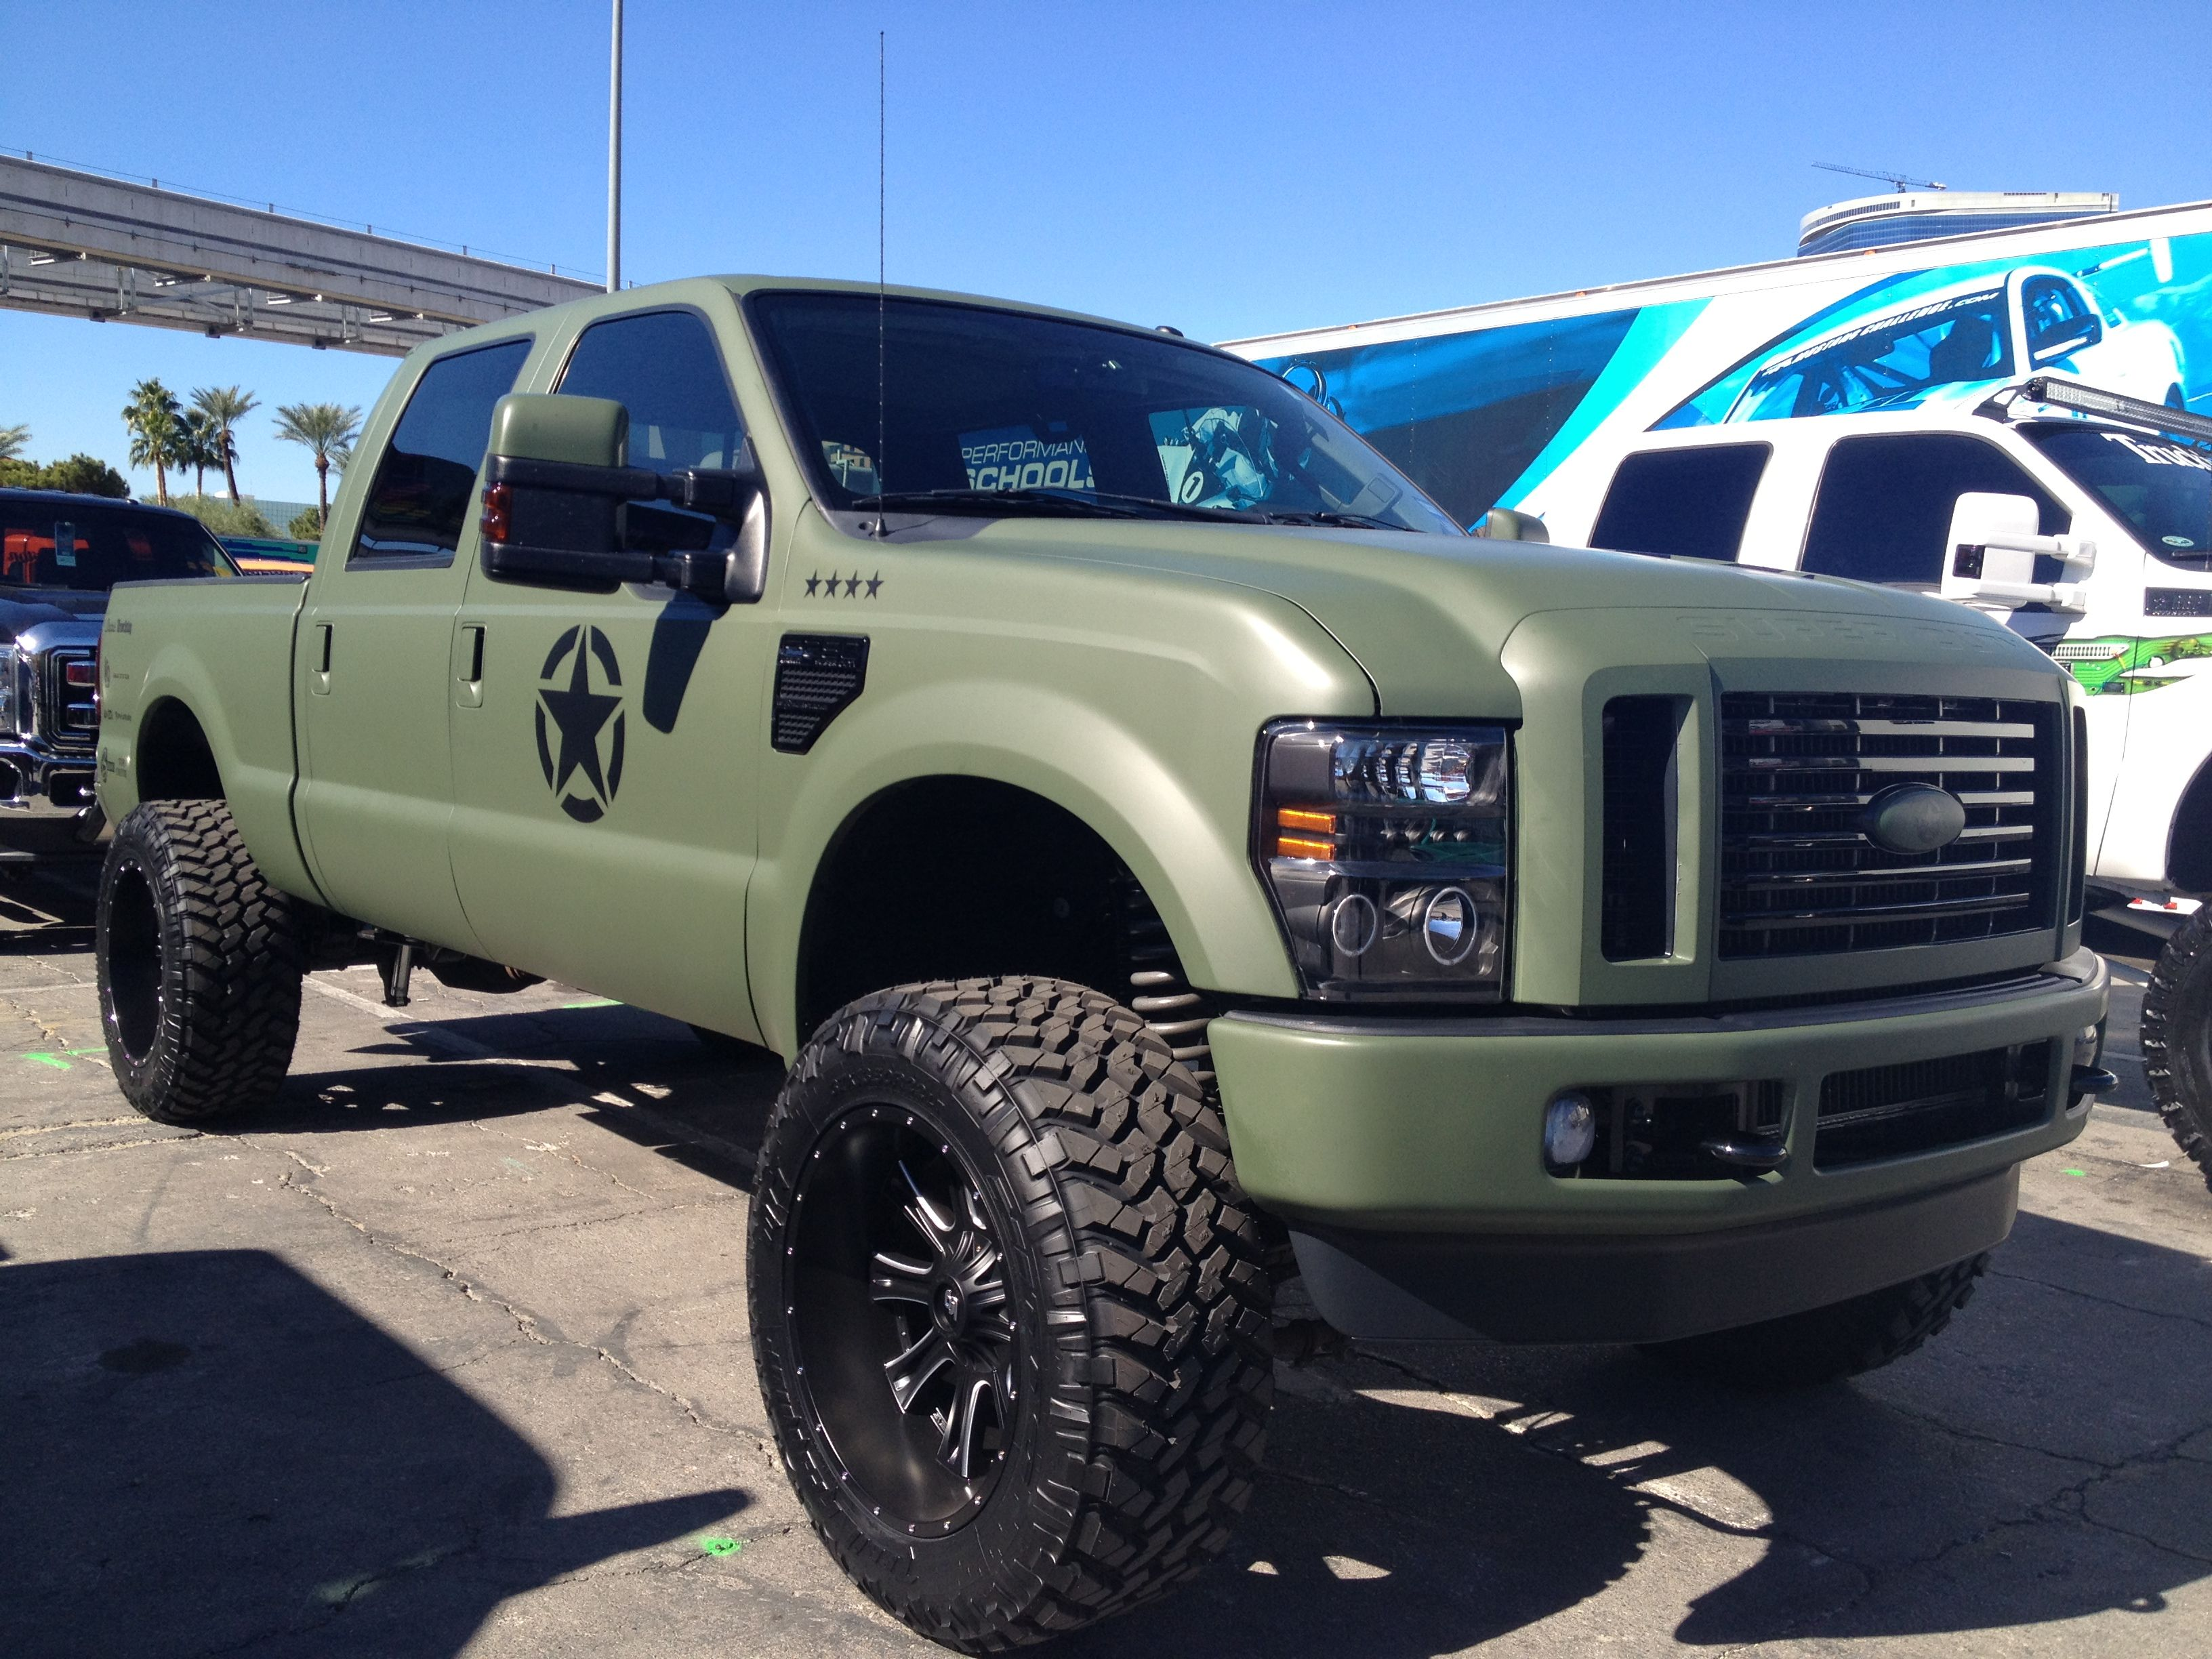 Ford F-350 Warbird. Love everything about this truck ...